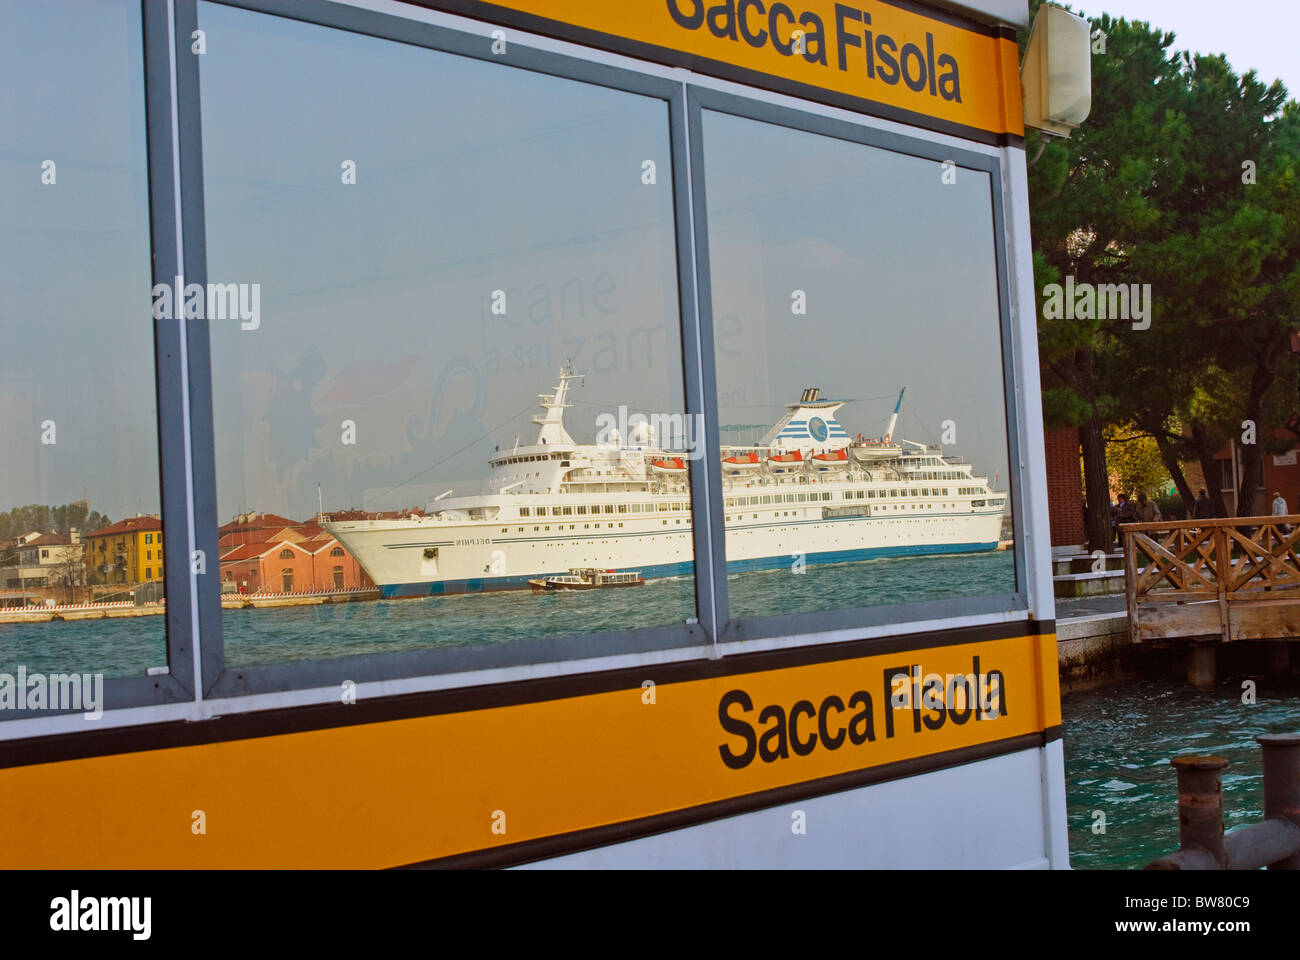 The cruise liner Delphin seen reflected in the windows of the vaporetto stop at Sacca Fisola, Venice - Stock Image